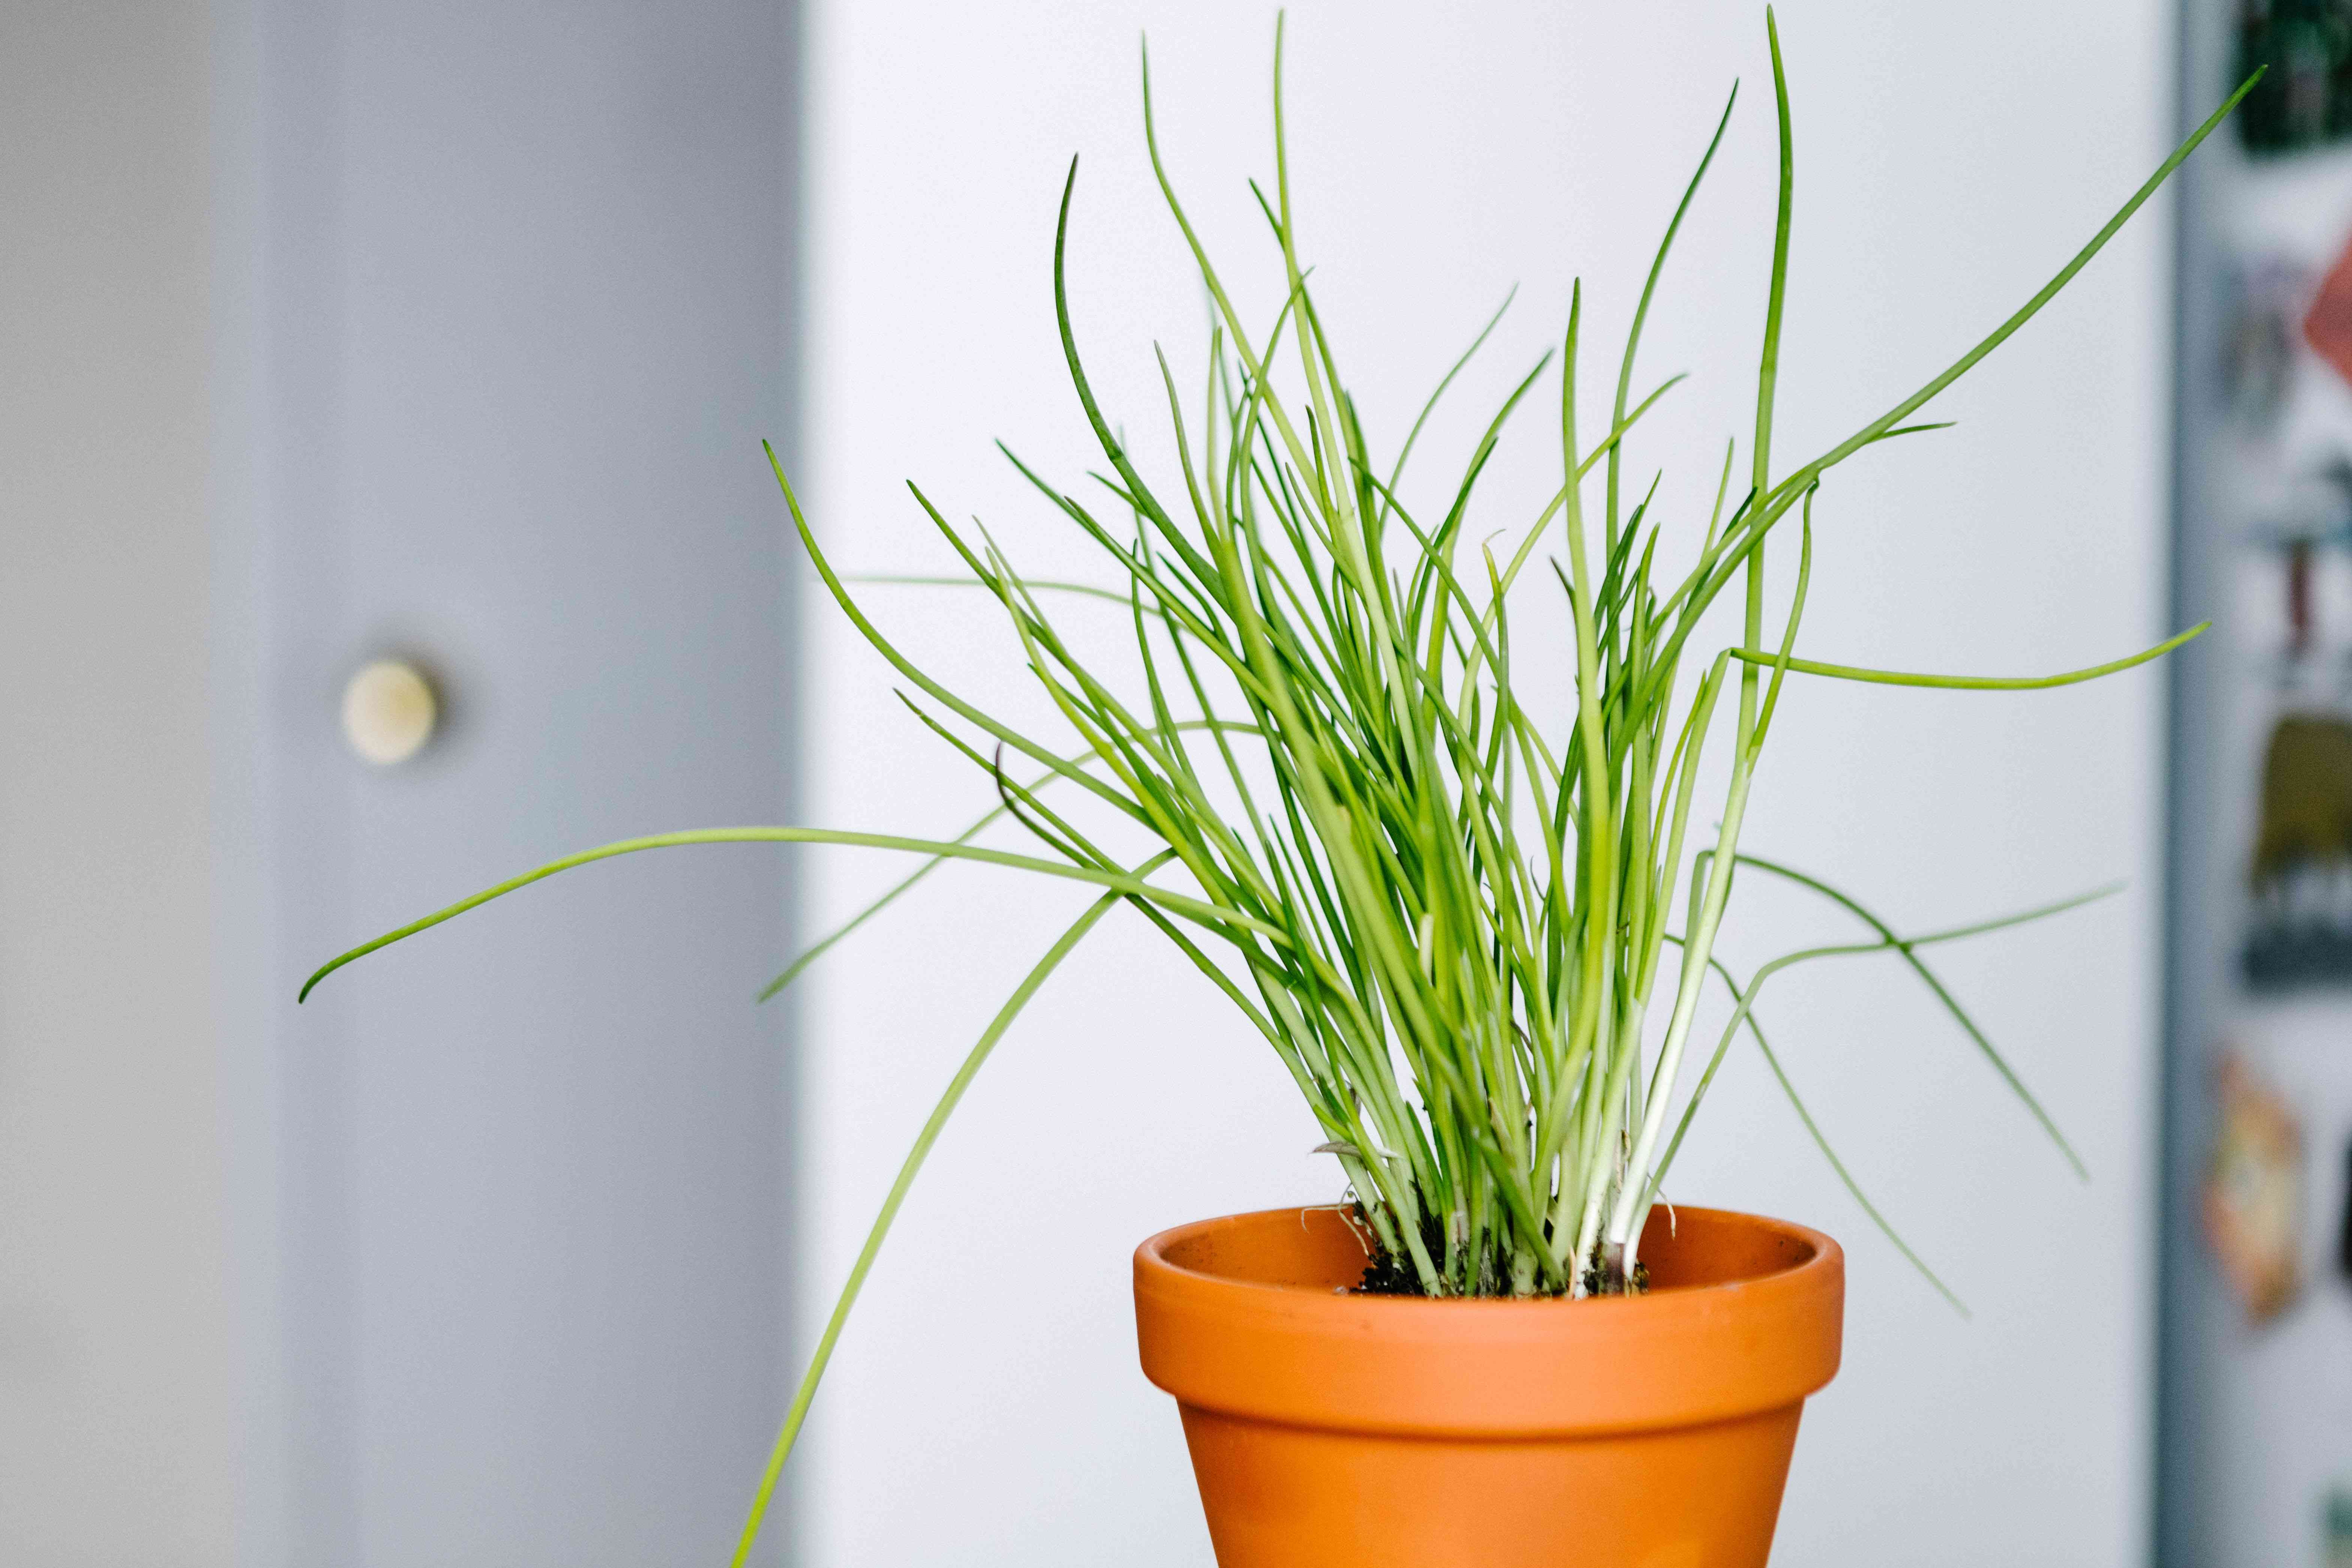 bright green chives plant in terra cotta pot in white indoor room